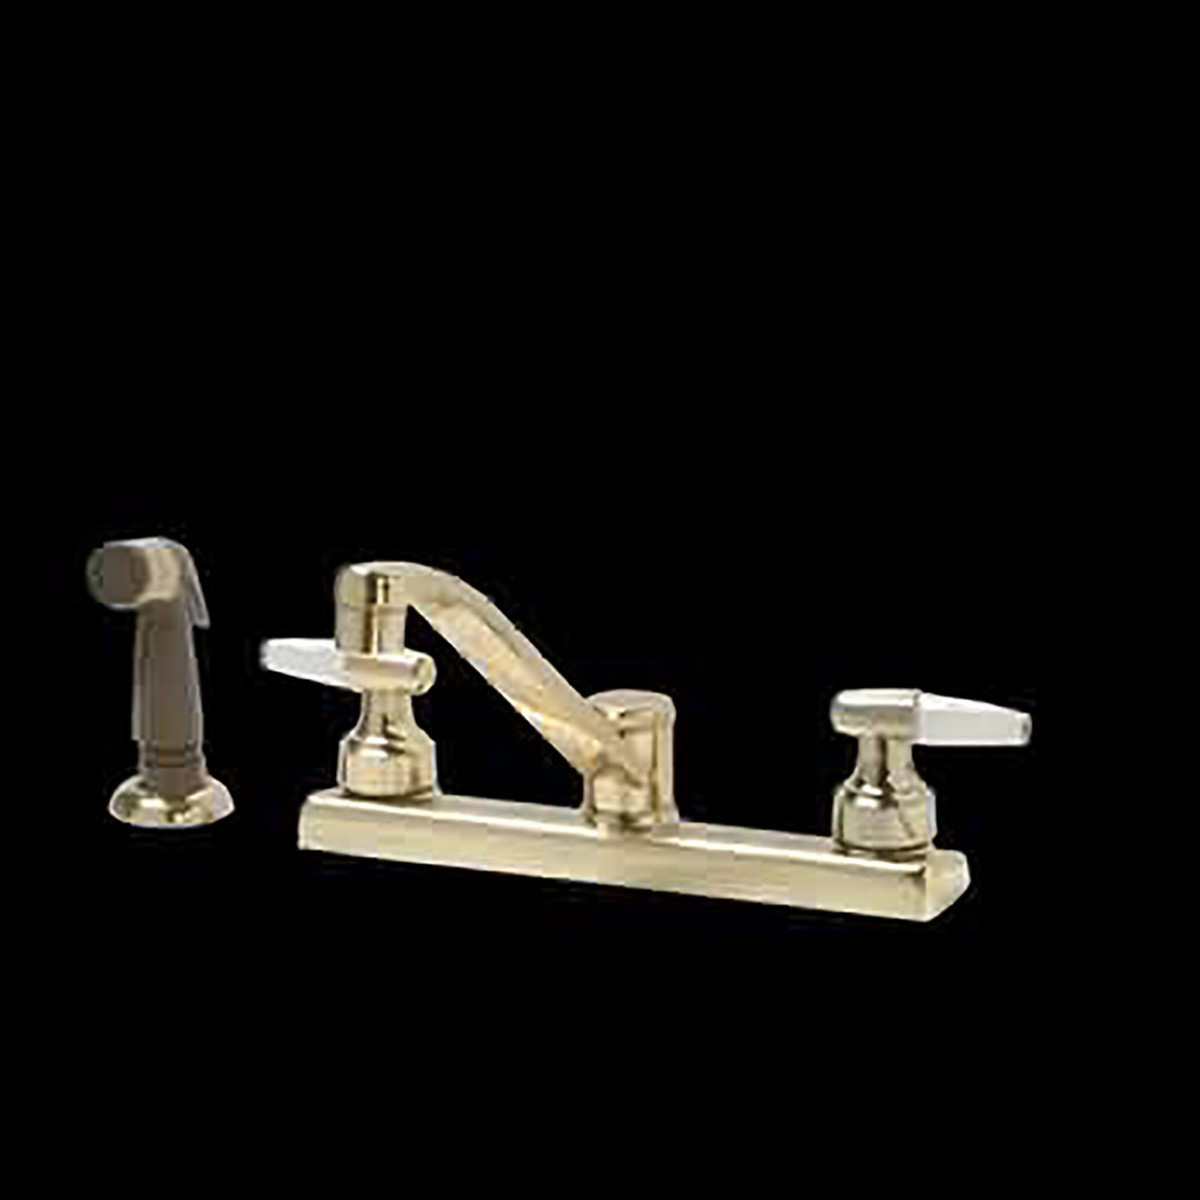 Widespread Kitchen Faucet Brass 2 Handles W Sprayer Sink Faucet Sink Faucets Faucets